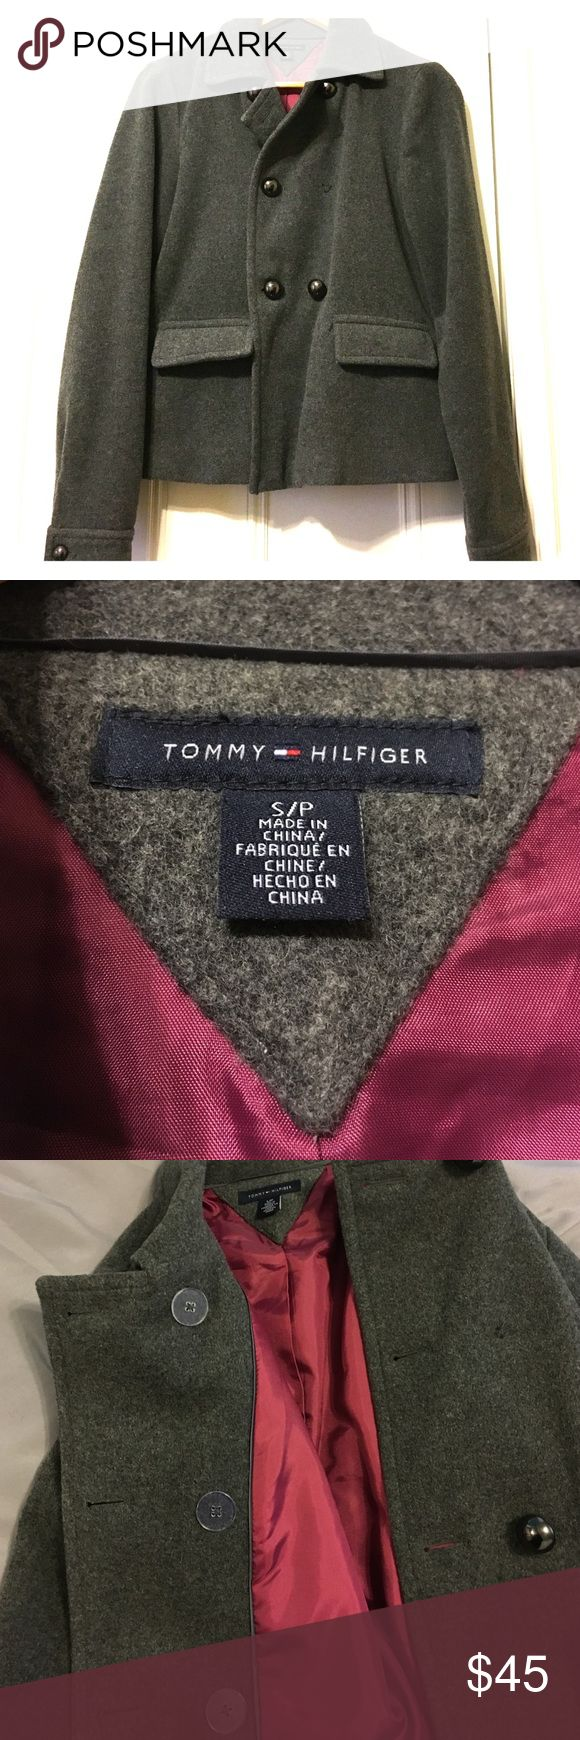 Tommy Hilfiger grey wool winter jacket. Cute grey wool winter jacket by Tommy Hilfiger.  Inner lining wine colored.  Inner buttons for secure closure, outer buttons for cute look.  Missing one button, otherwise great condition.  Worn only a few times. Tommy Hilfiger Jackets & Coats